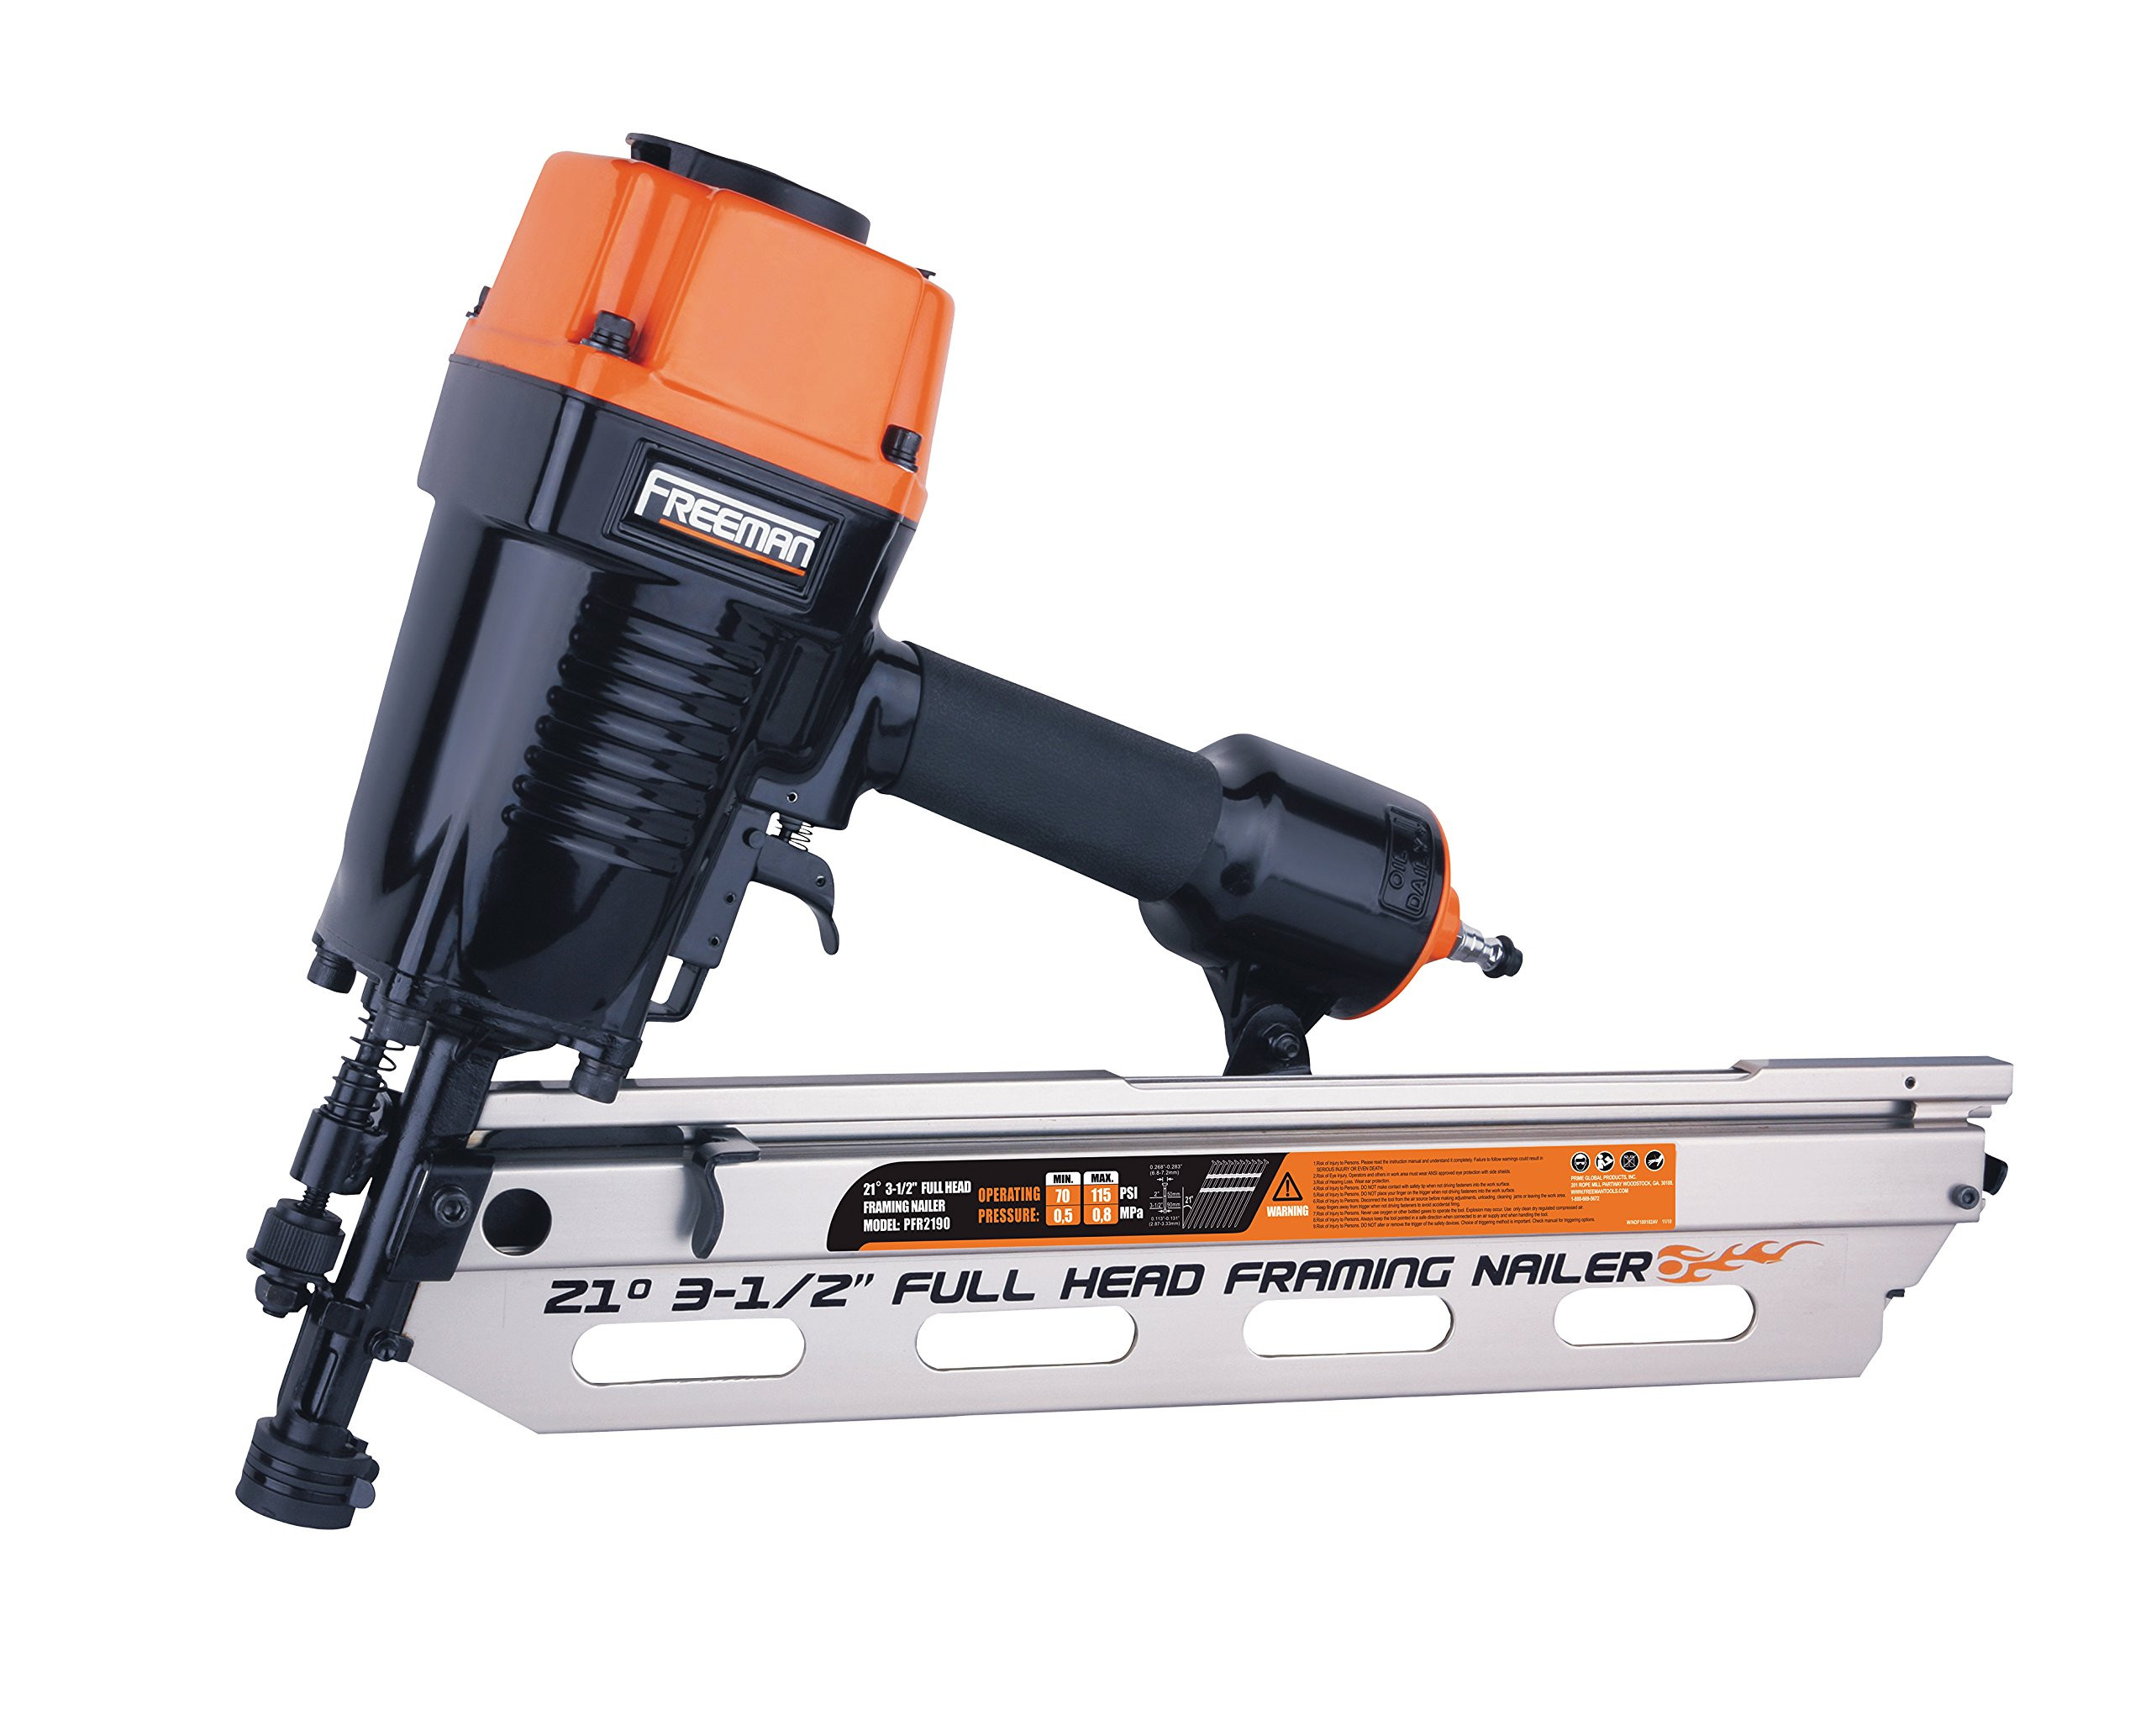 Hardwood Floor Nailer Psi Of Best Rated In Power Framing Nailers Helpful Customer Reviews Pertaining to Freeman Pfr2190 21 Degree Full Head Framing Nailer Product Image